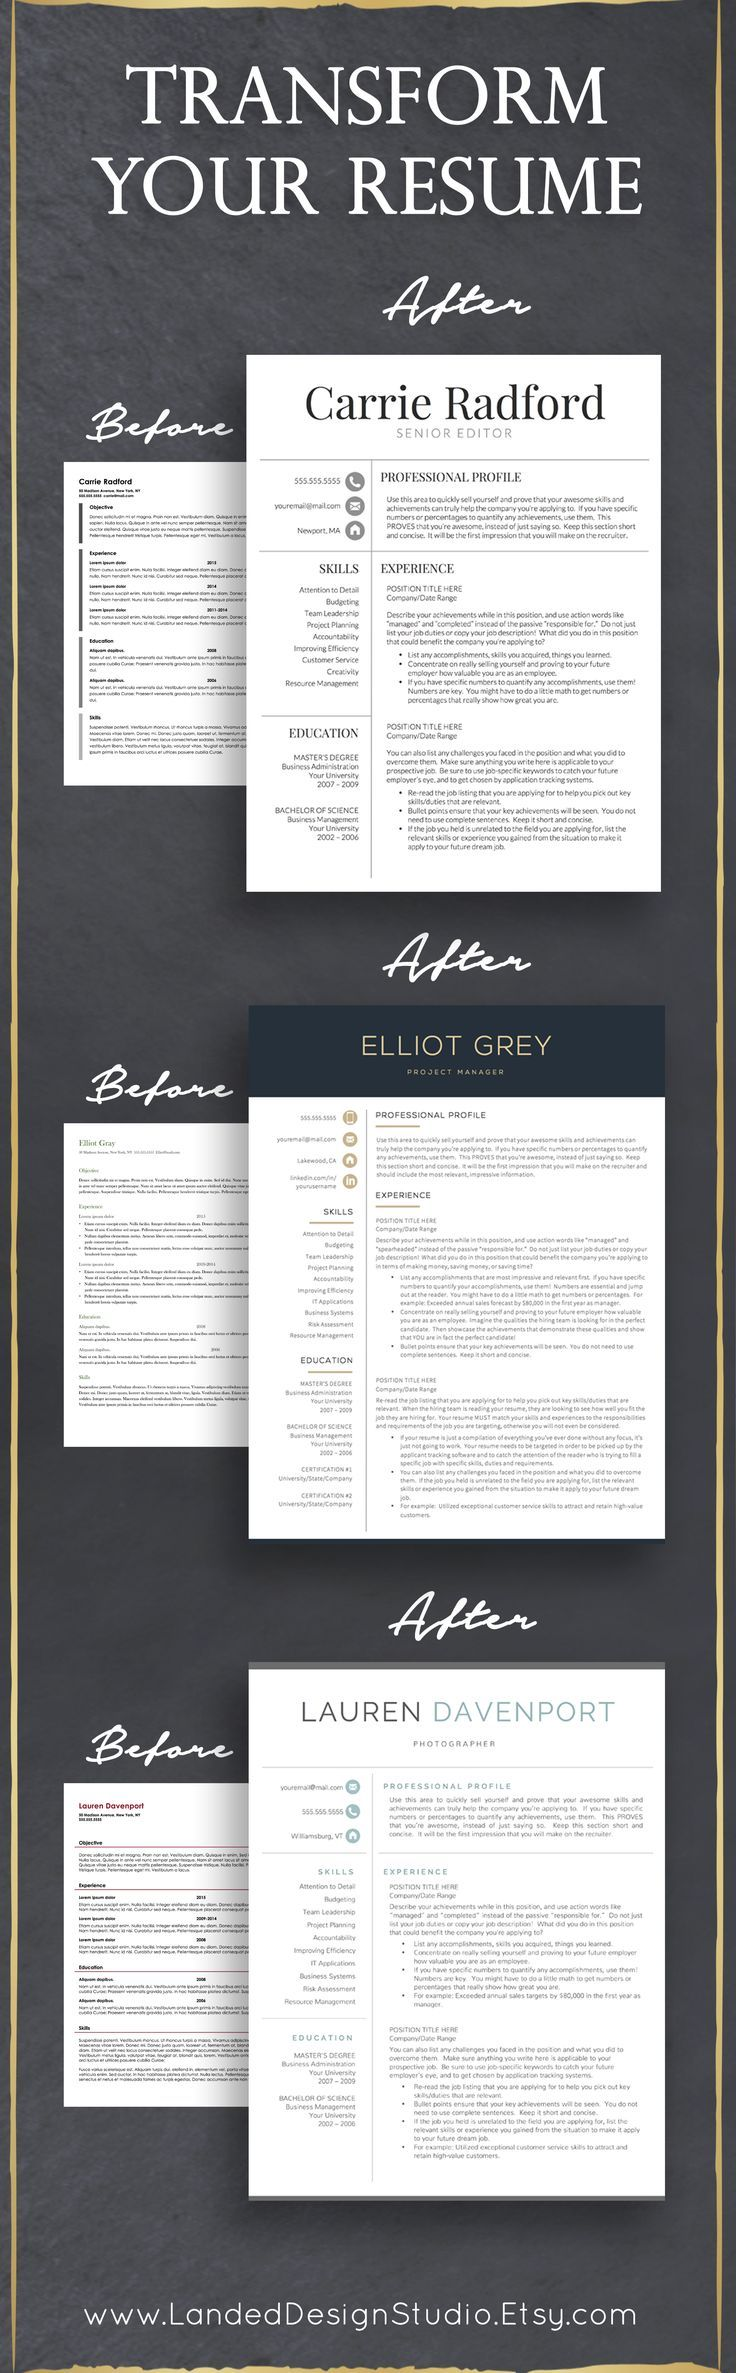 Completely Transform Your Resume With A Professional Resume Template, Resume  Writing Tips And Resume Advice